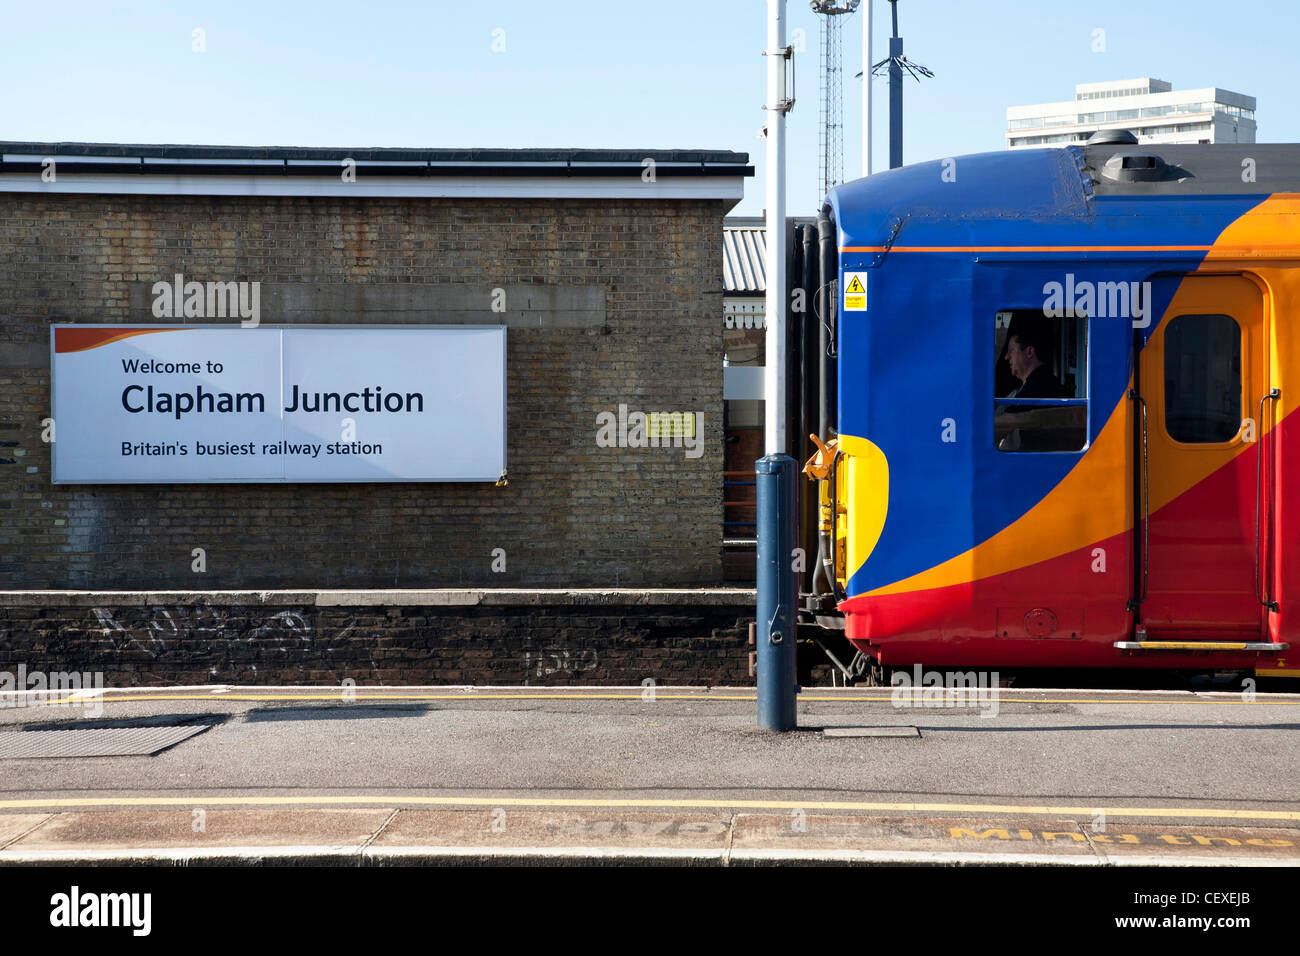 Welcome to Clapham Junction, Britain's busiest railway station. Sign and train at platform, driver in the cab. - Stock Image